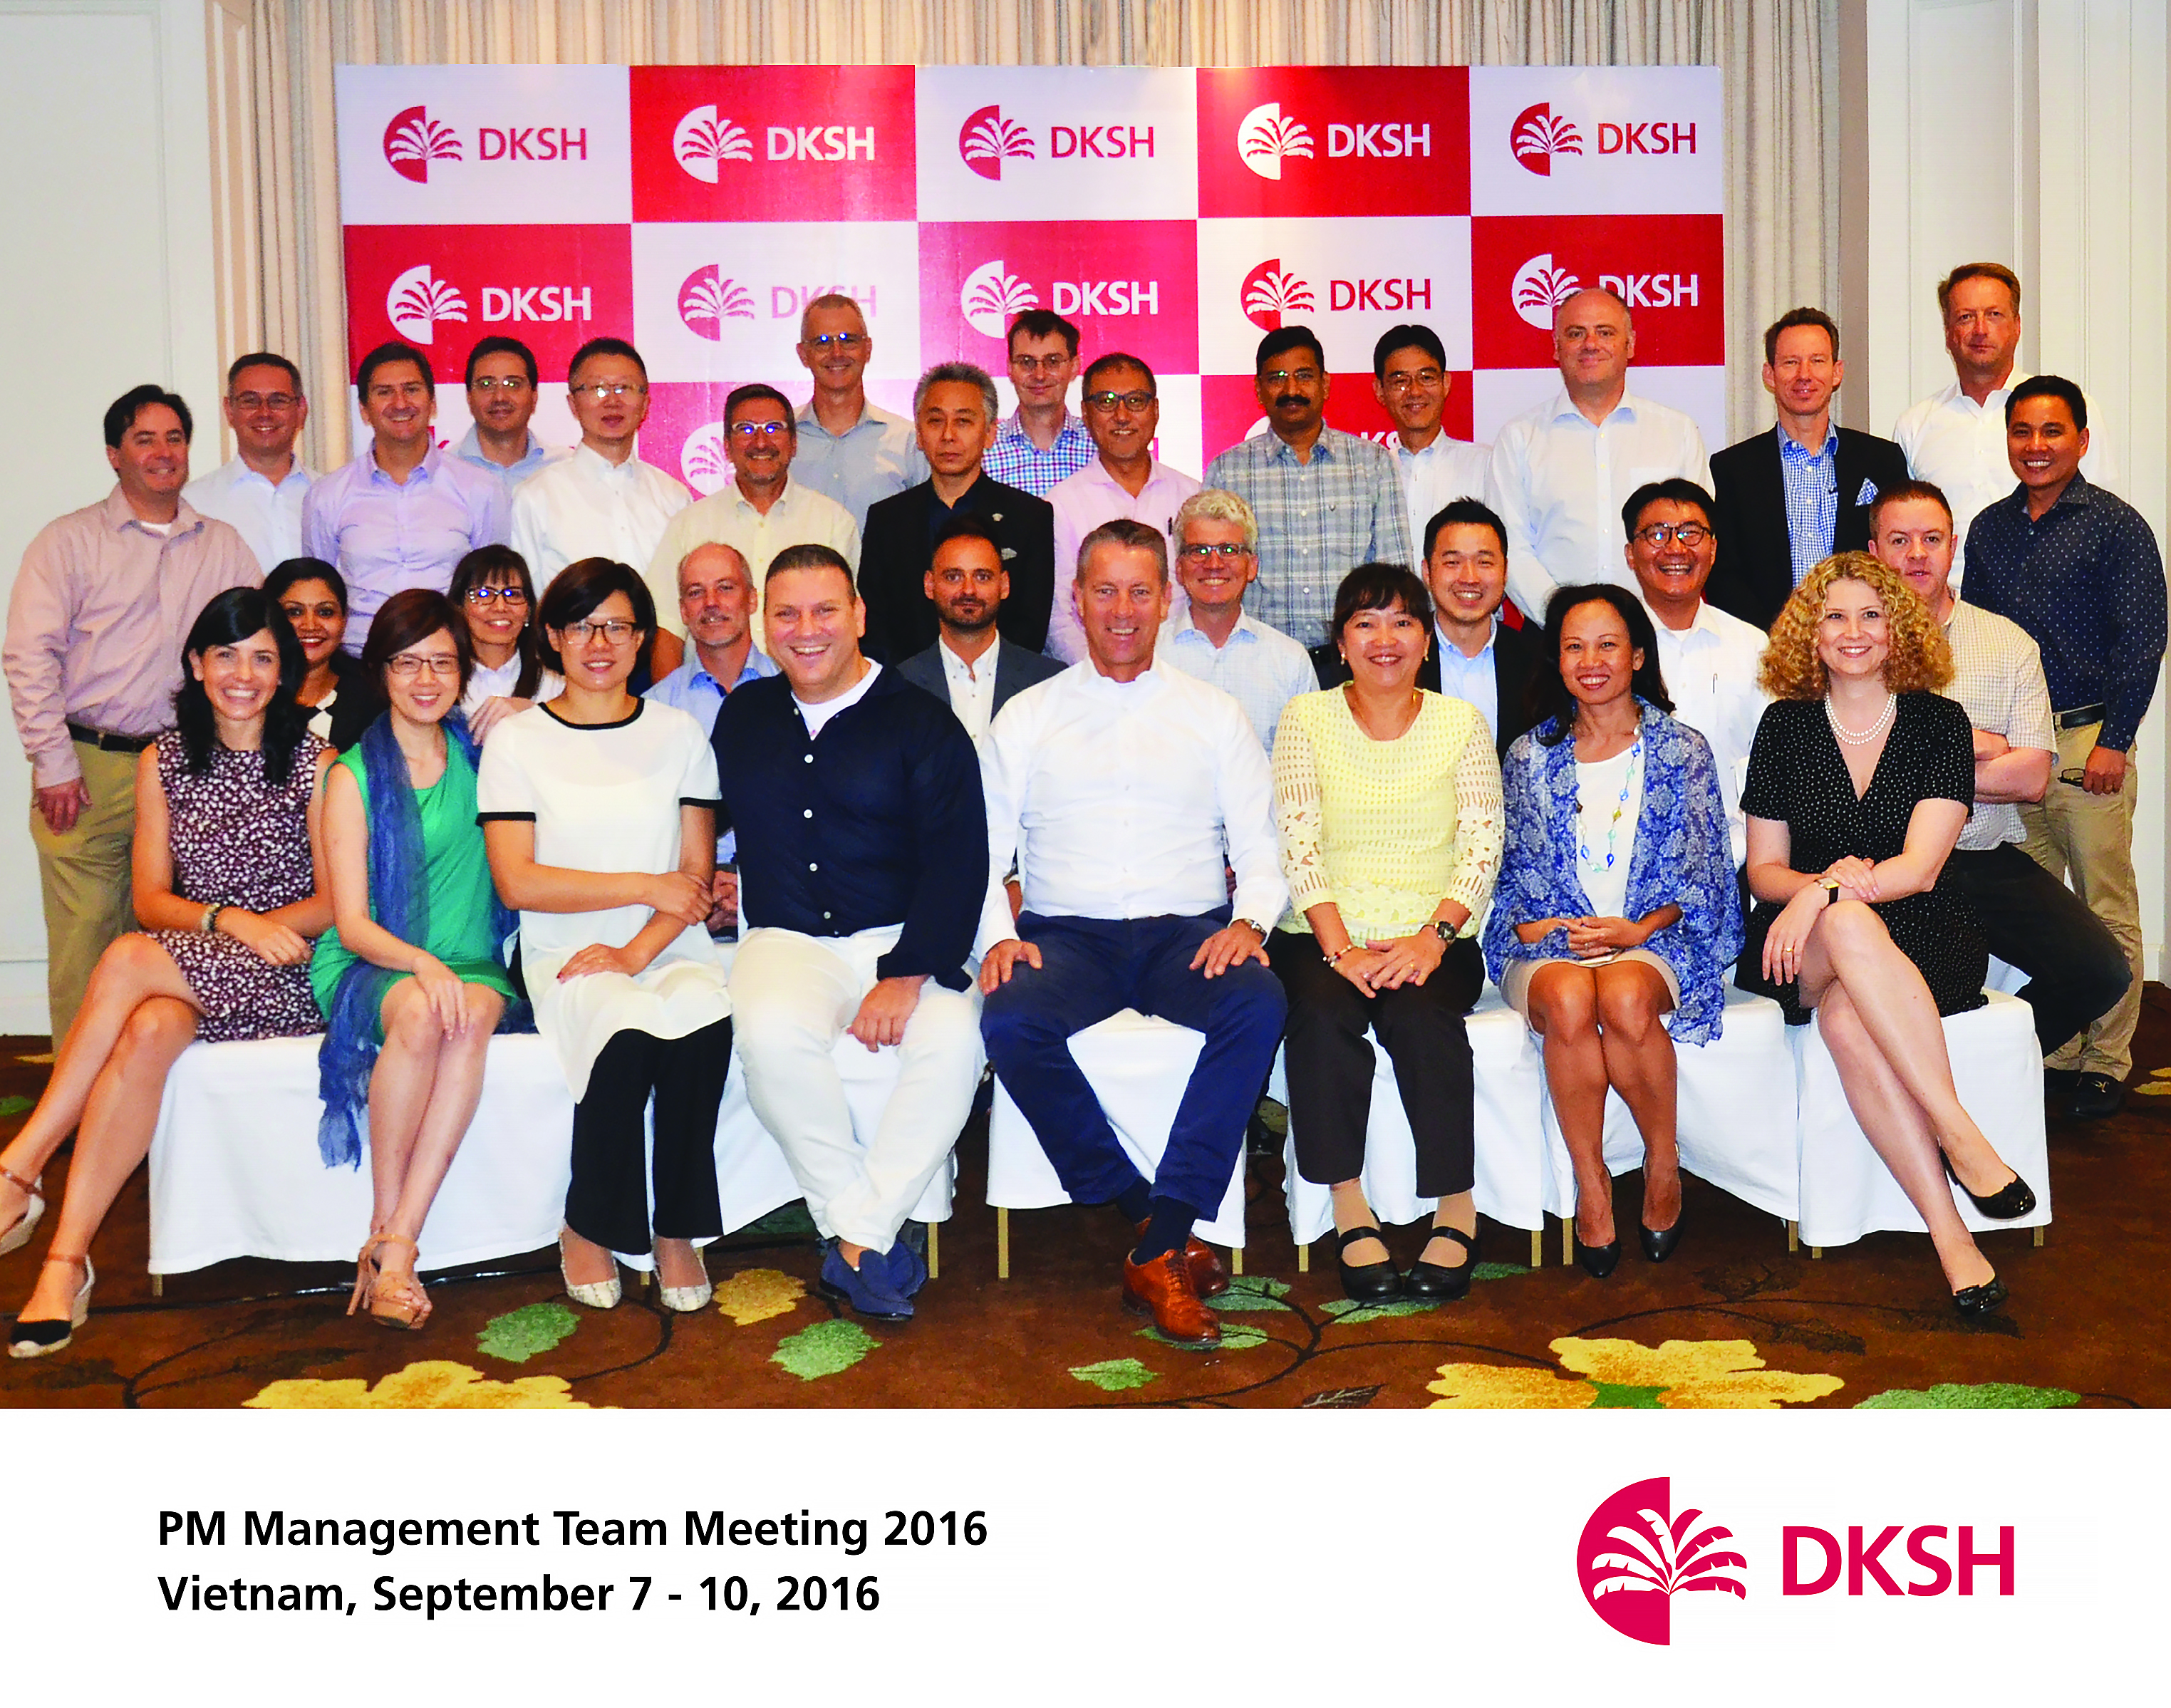 DKSH - Management Team Meeting 2016